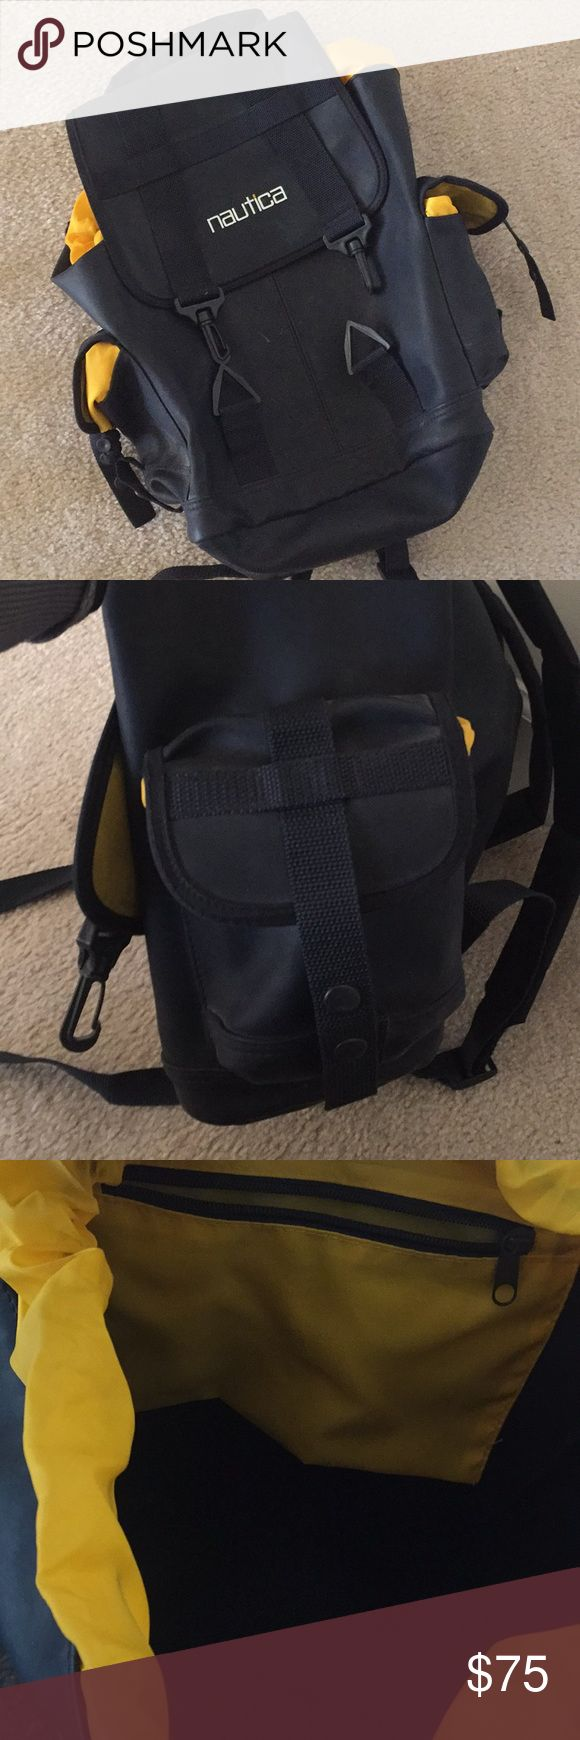 😎NAUTICA Backpack SALE!!😎 Nautica backpack sale! For men, women or kids. Navy blue and yellow backpack. Roomy inside plus zip pocket for money or other. Two side pockets. Very classy and stylish.  A perfect gift or treat for yourself!!! Nautica Bags Backpacks